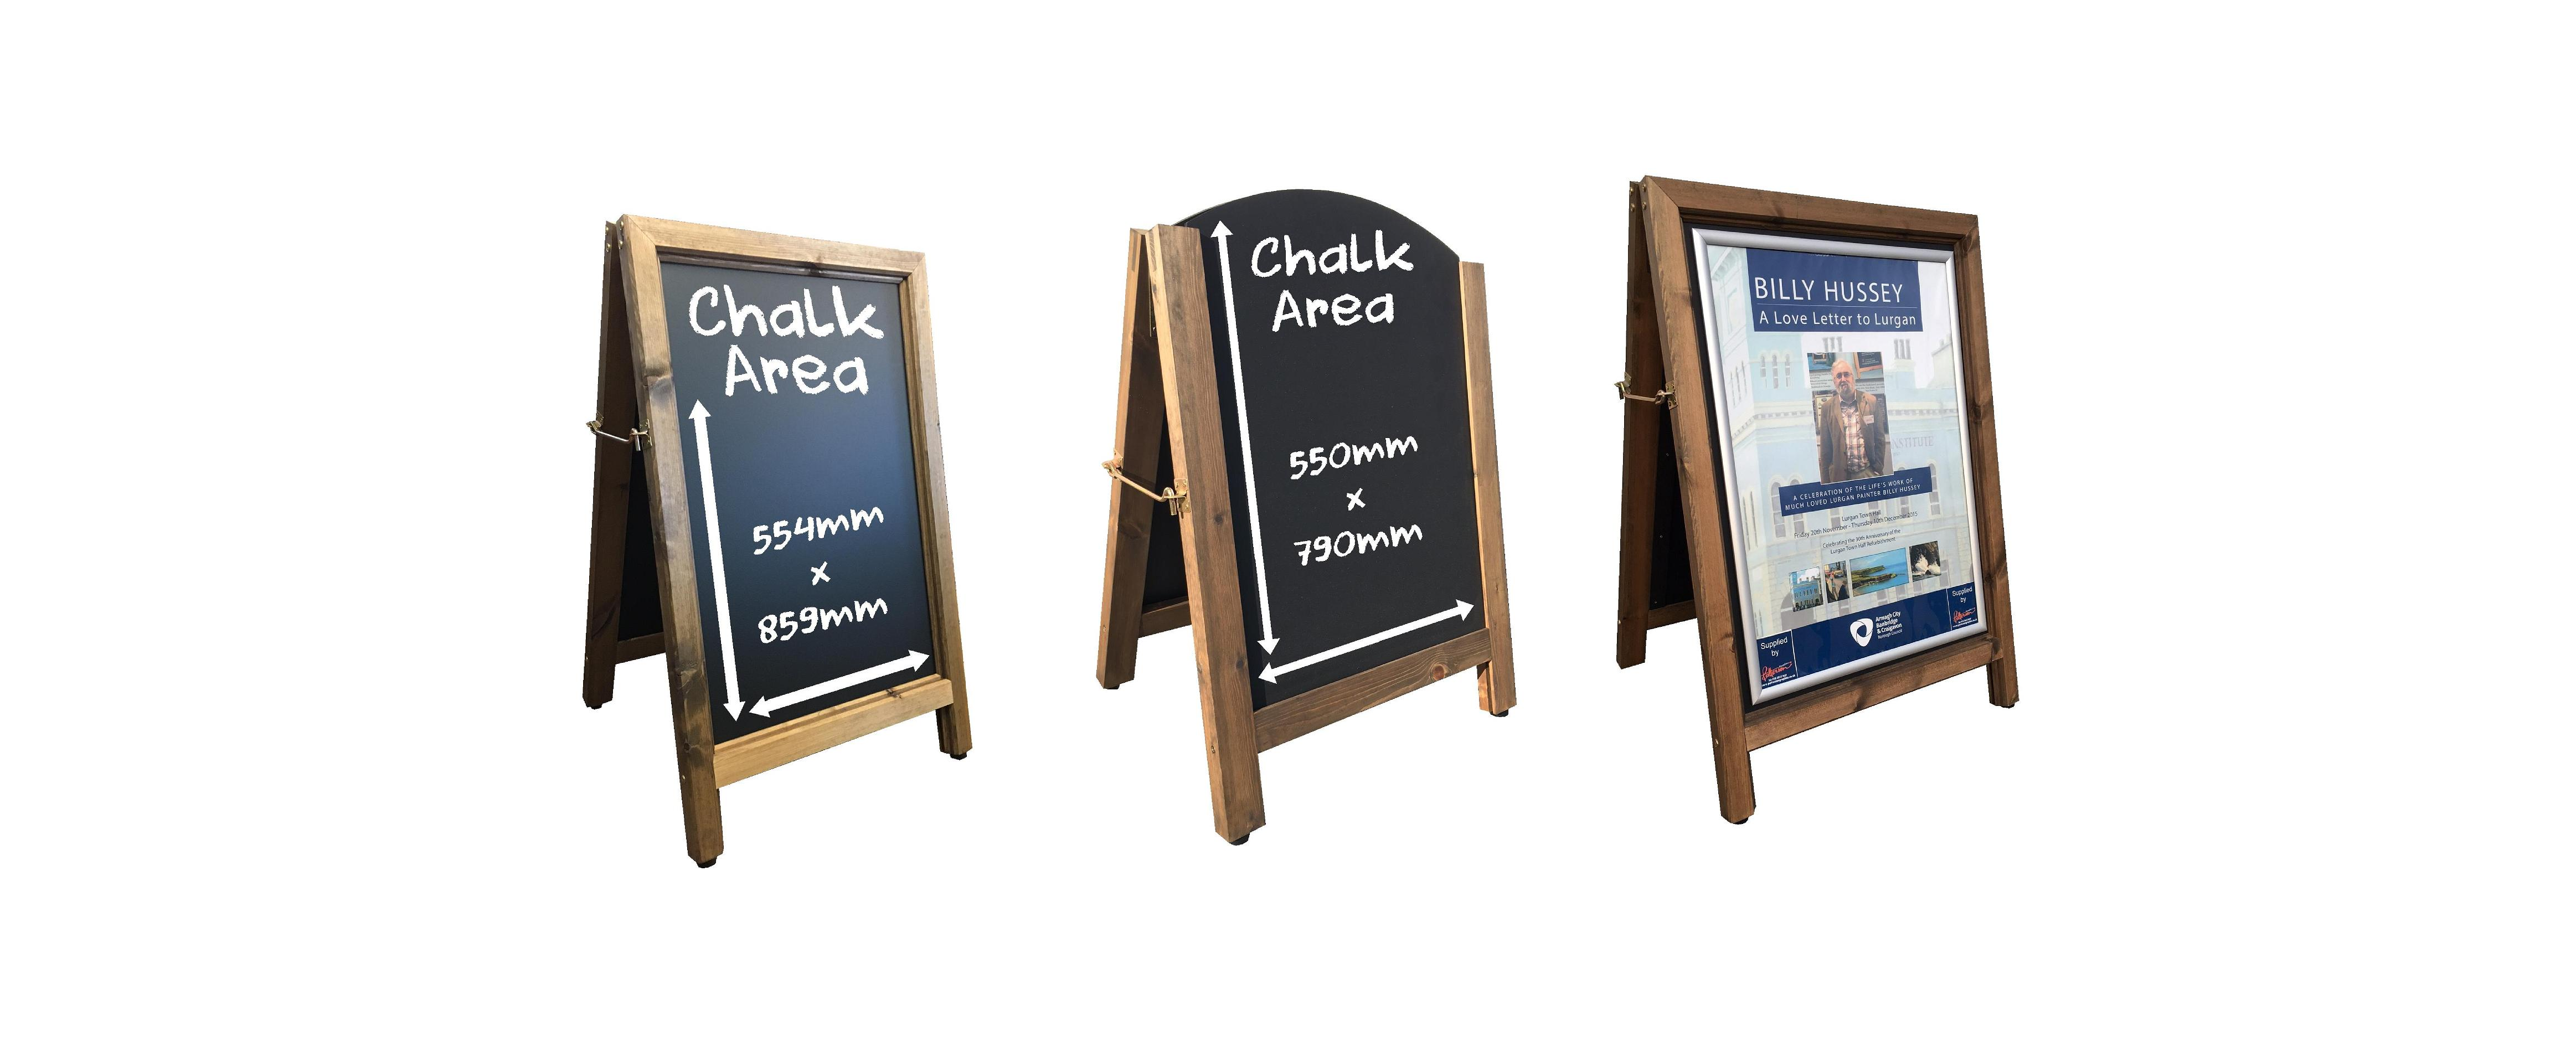 A Board Wooden Pavement Signs Archives - Chalkboard Products